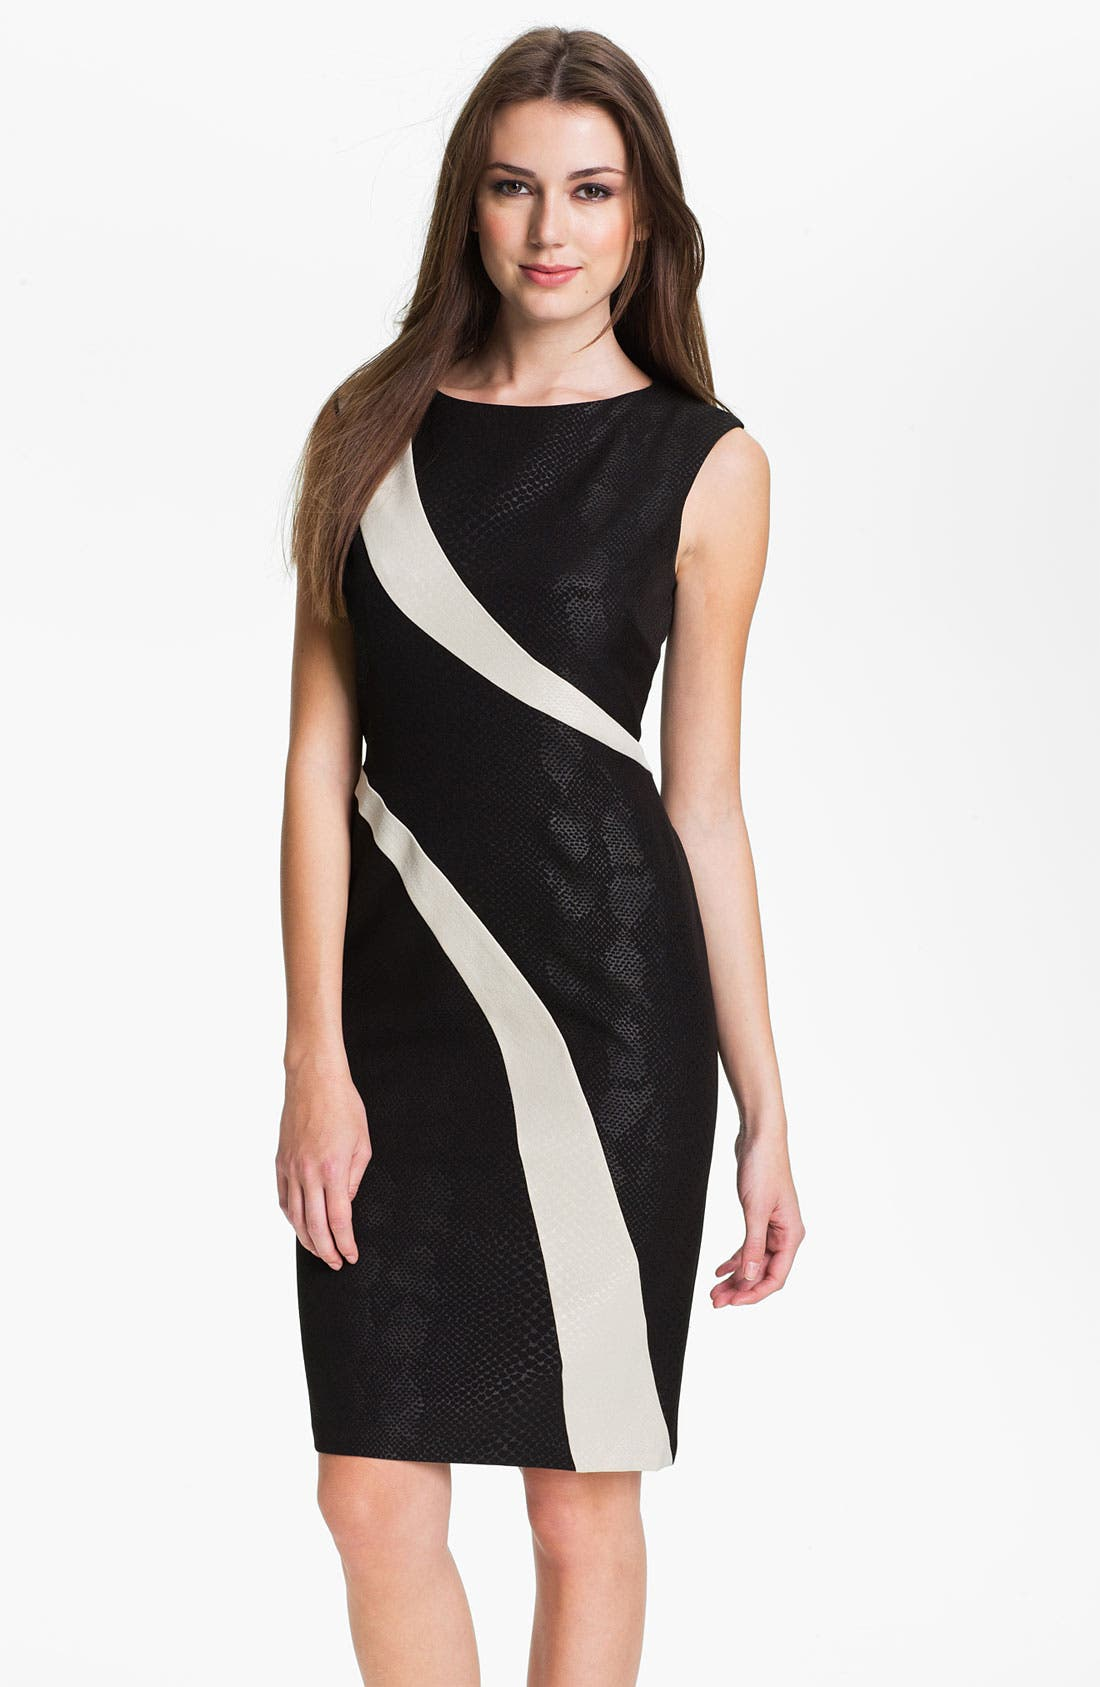 Main Image - Adrianna Papell Contrast Panel Snakeskin Pattern Sheath Dress